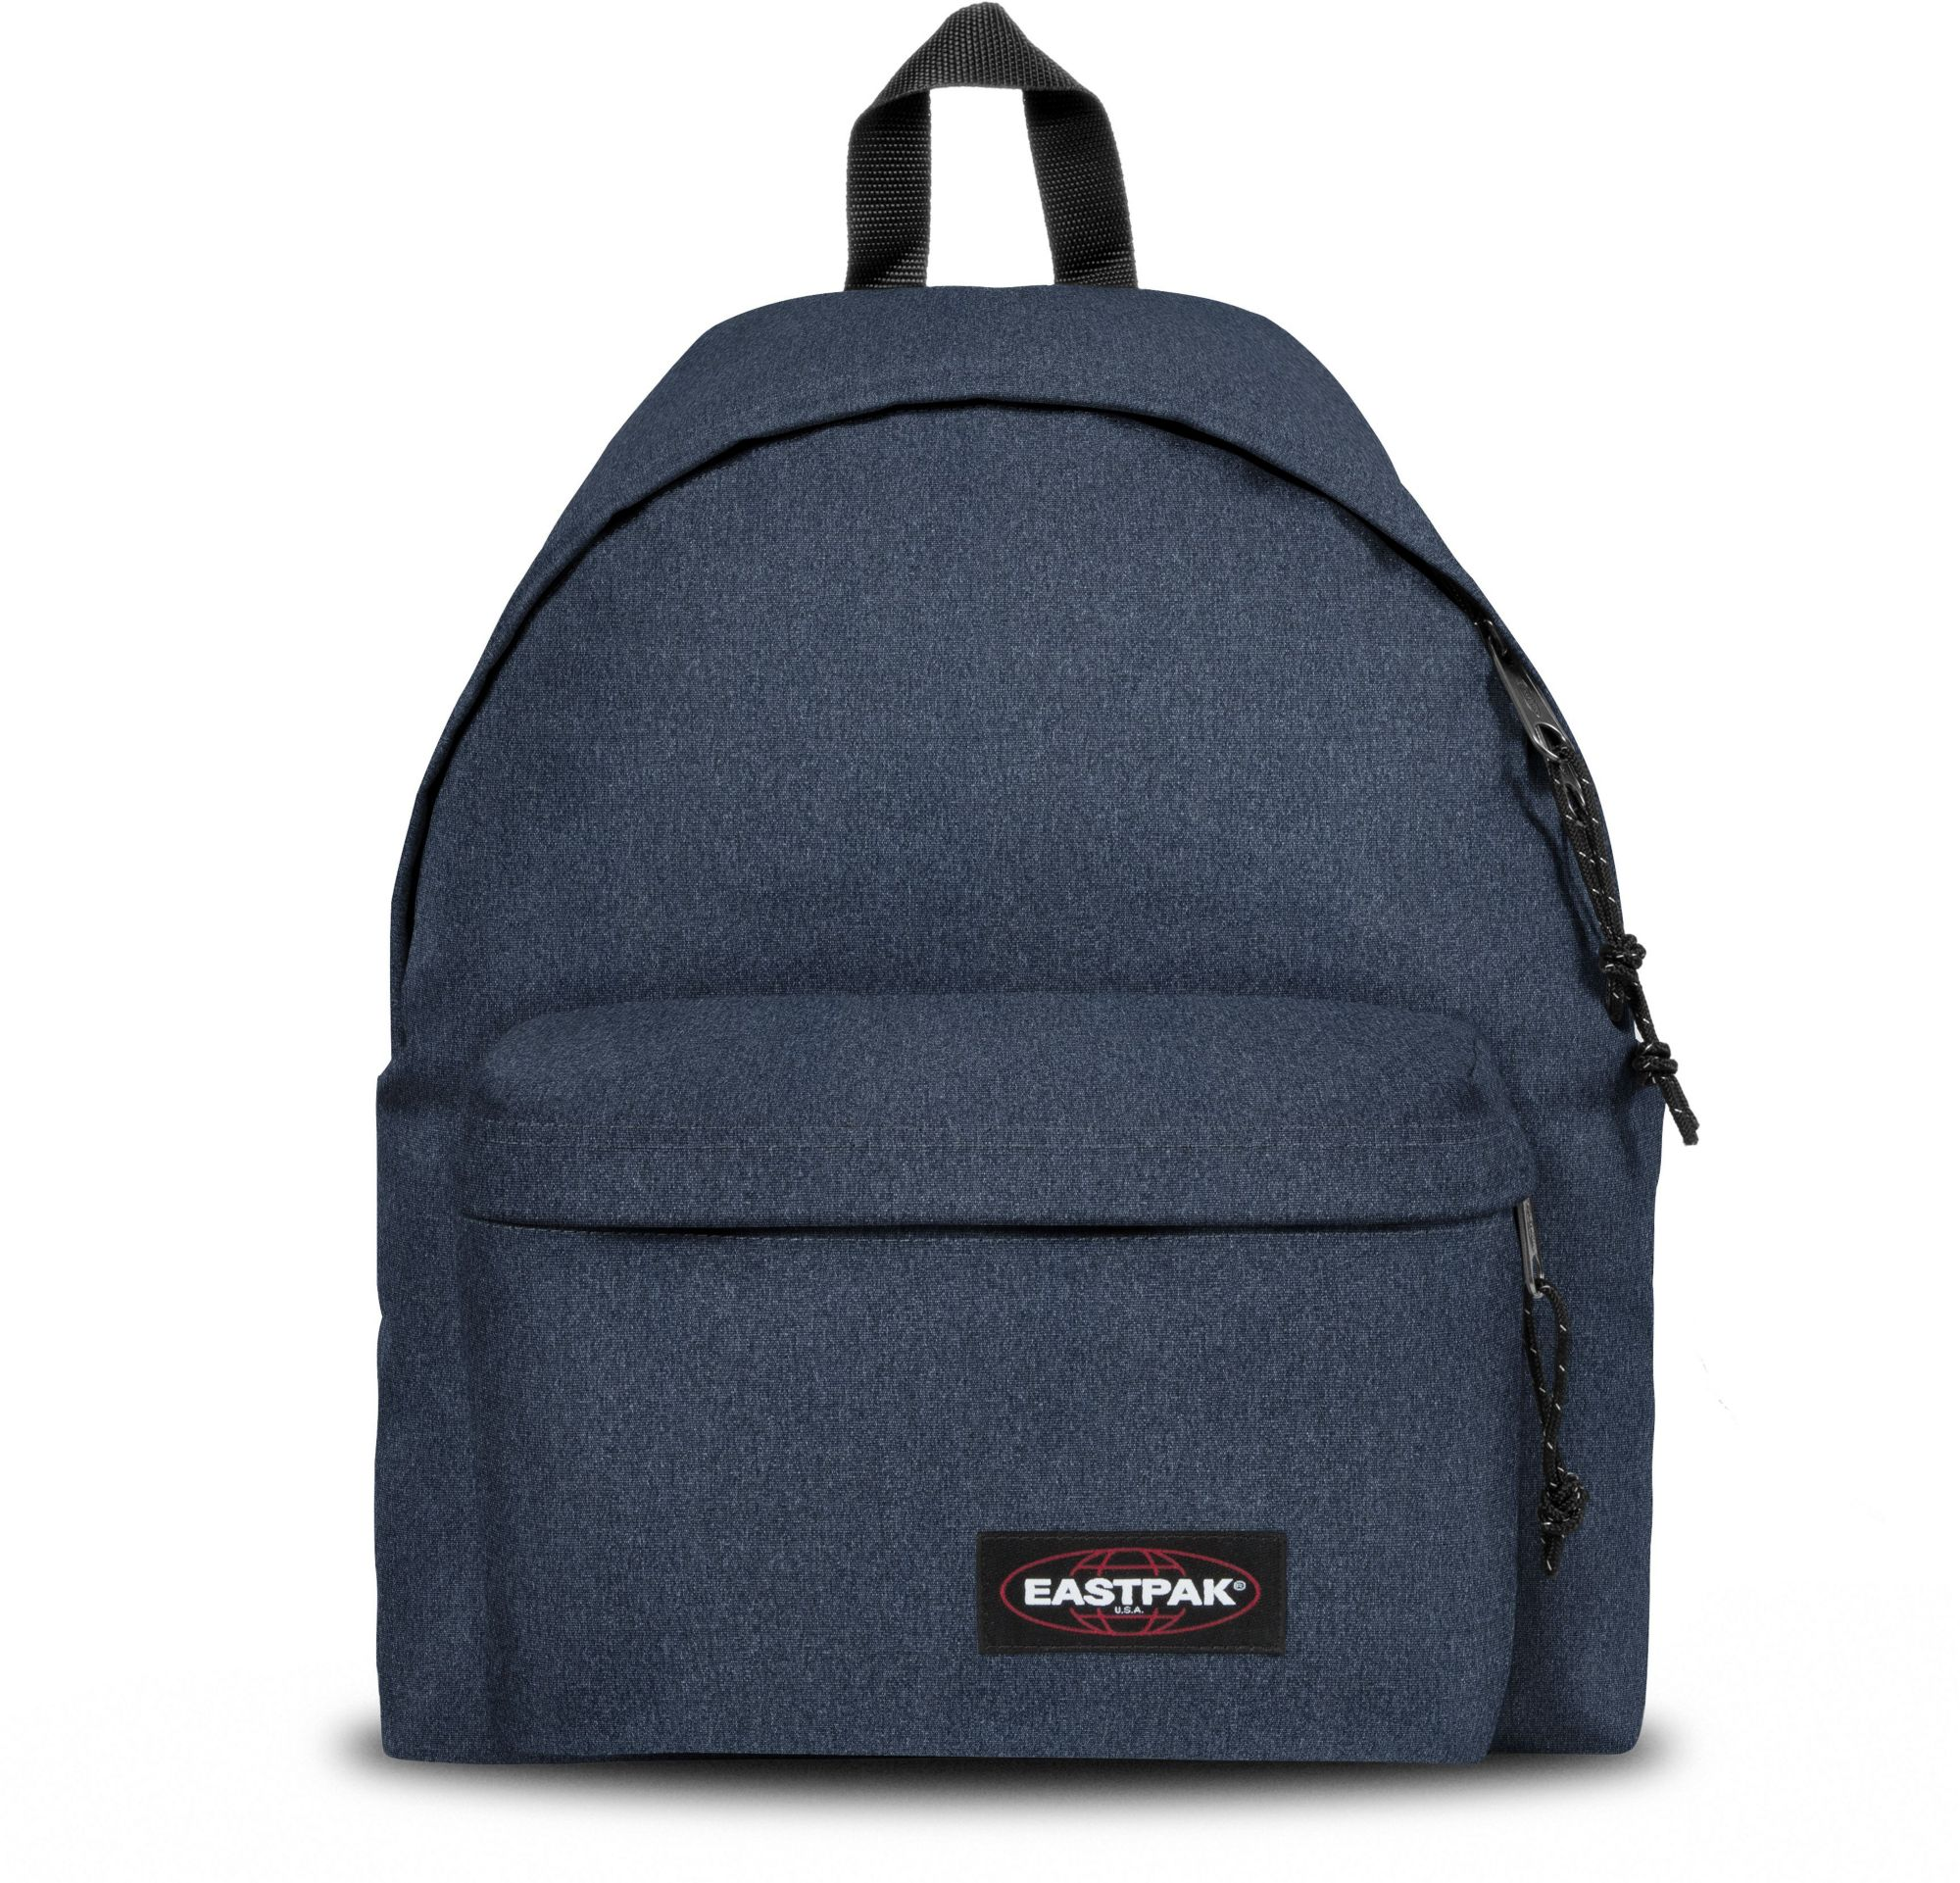 EASTPAK Eastpak Rucksack, »PADDED PAK'R double denim«